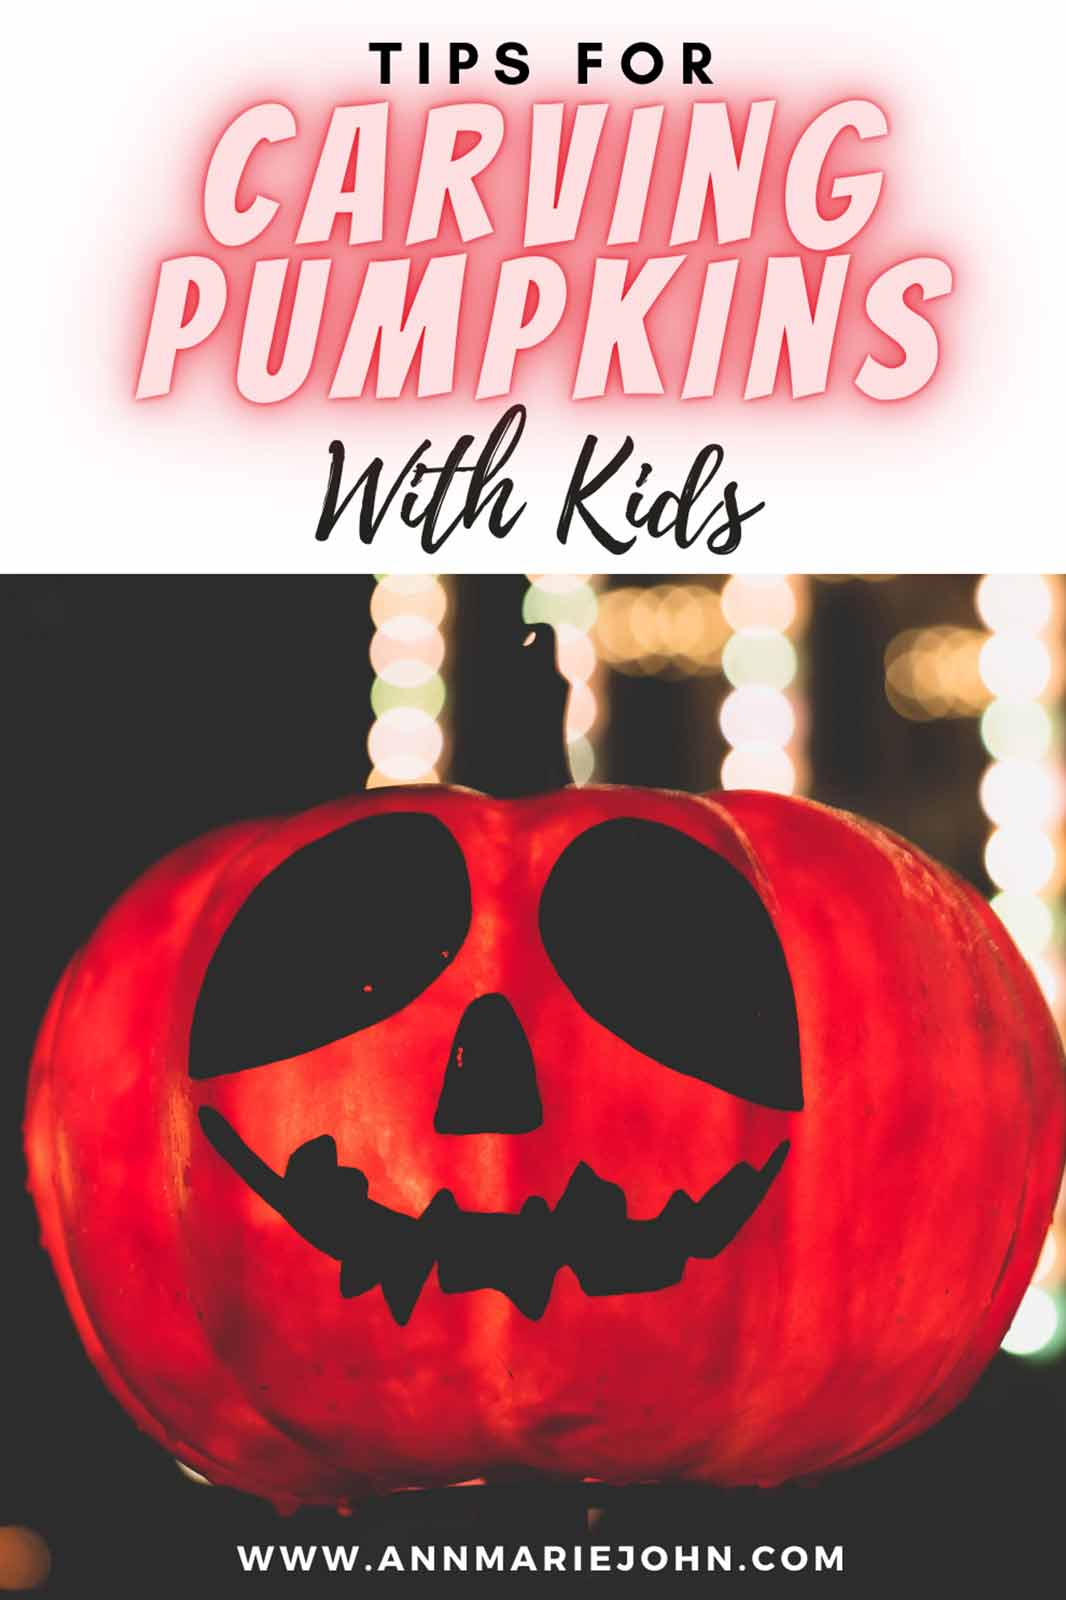 Tips for Carving Pumpkins with Kids